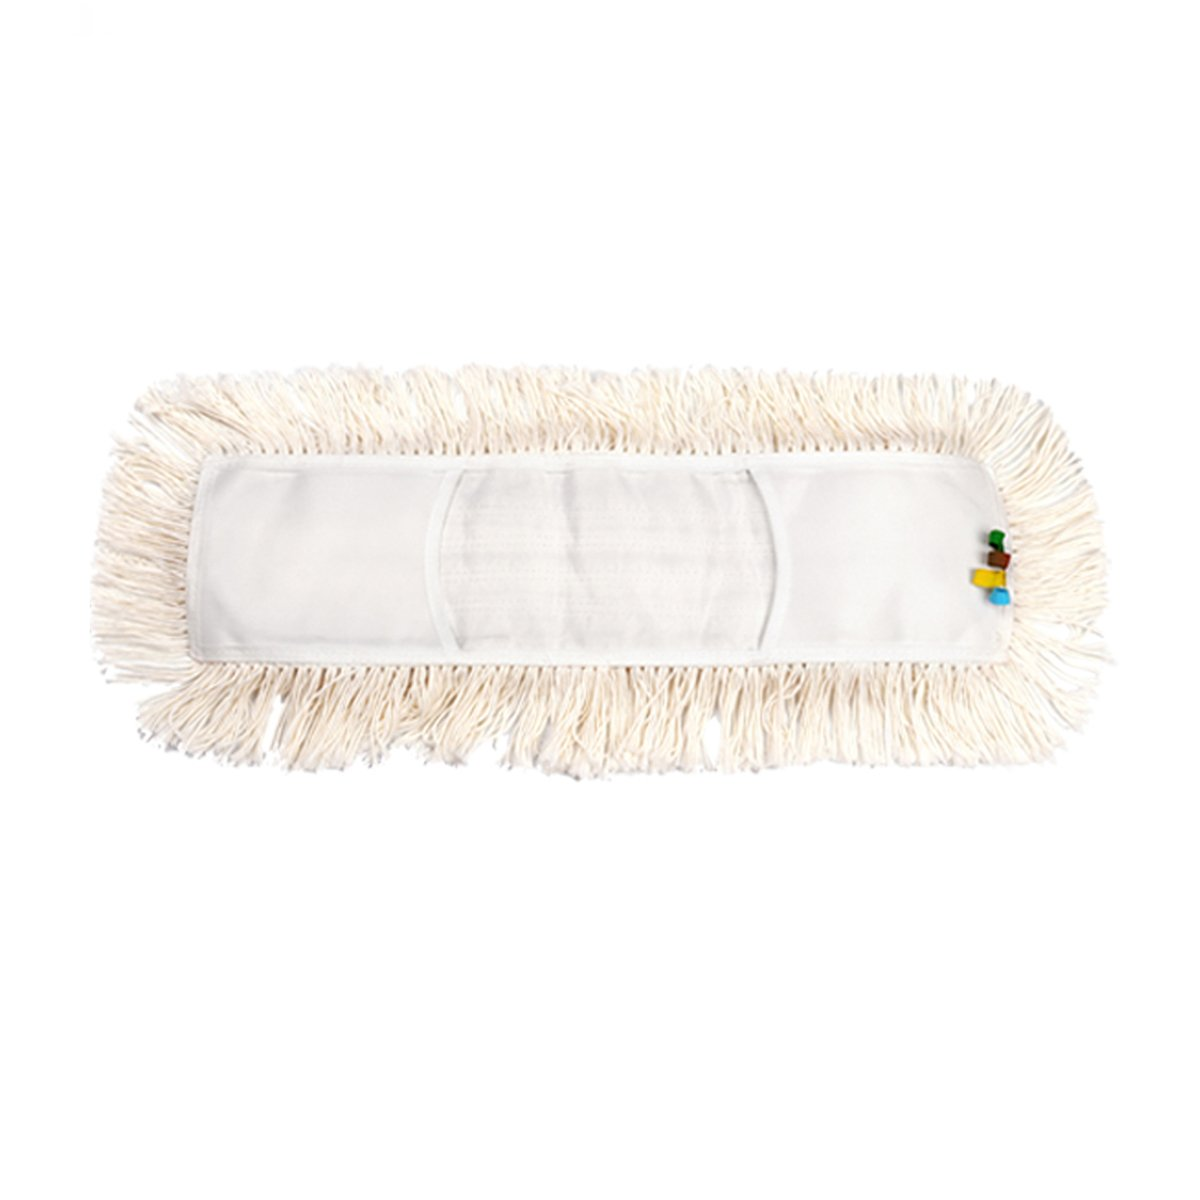 YCUTE Commercial Strength Cotton Dust Mop Refill, Thick Tufted Replacement Head For Home & Commercial Use, Fits Standard Size Mop Frame, Perfect for Hardwood, Laminate, Concrete (1, 35'')